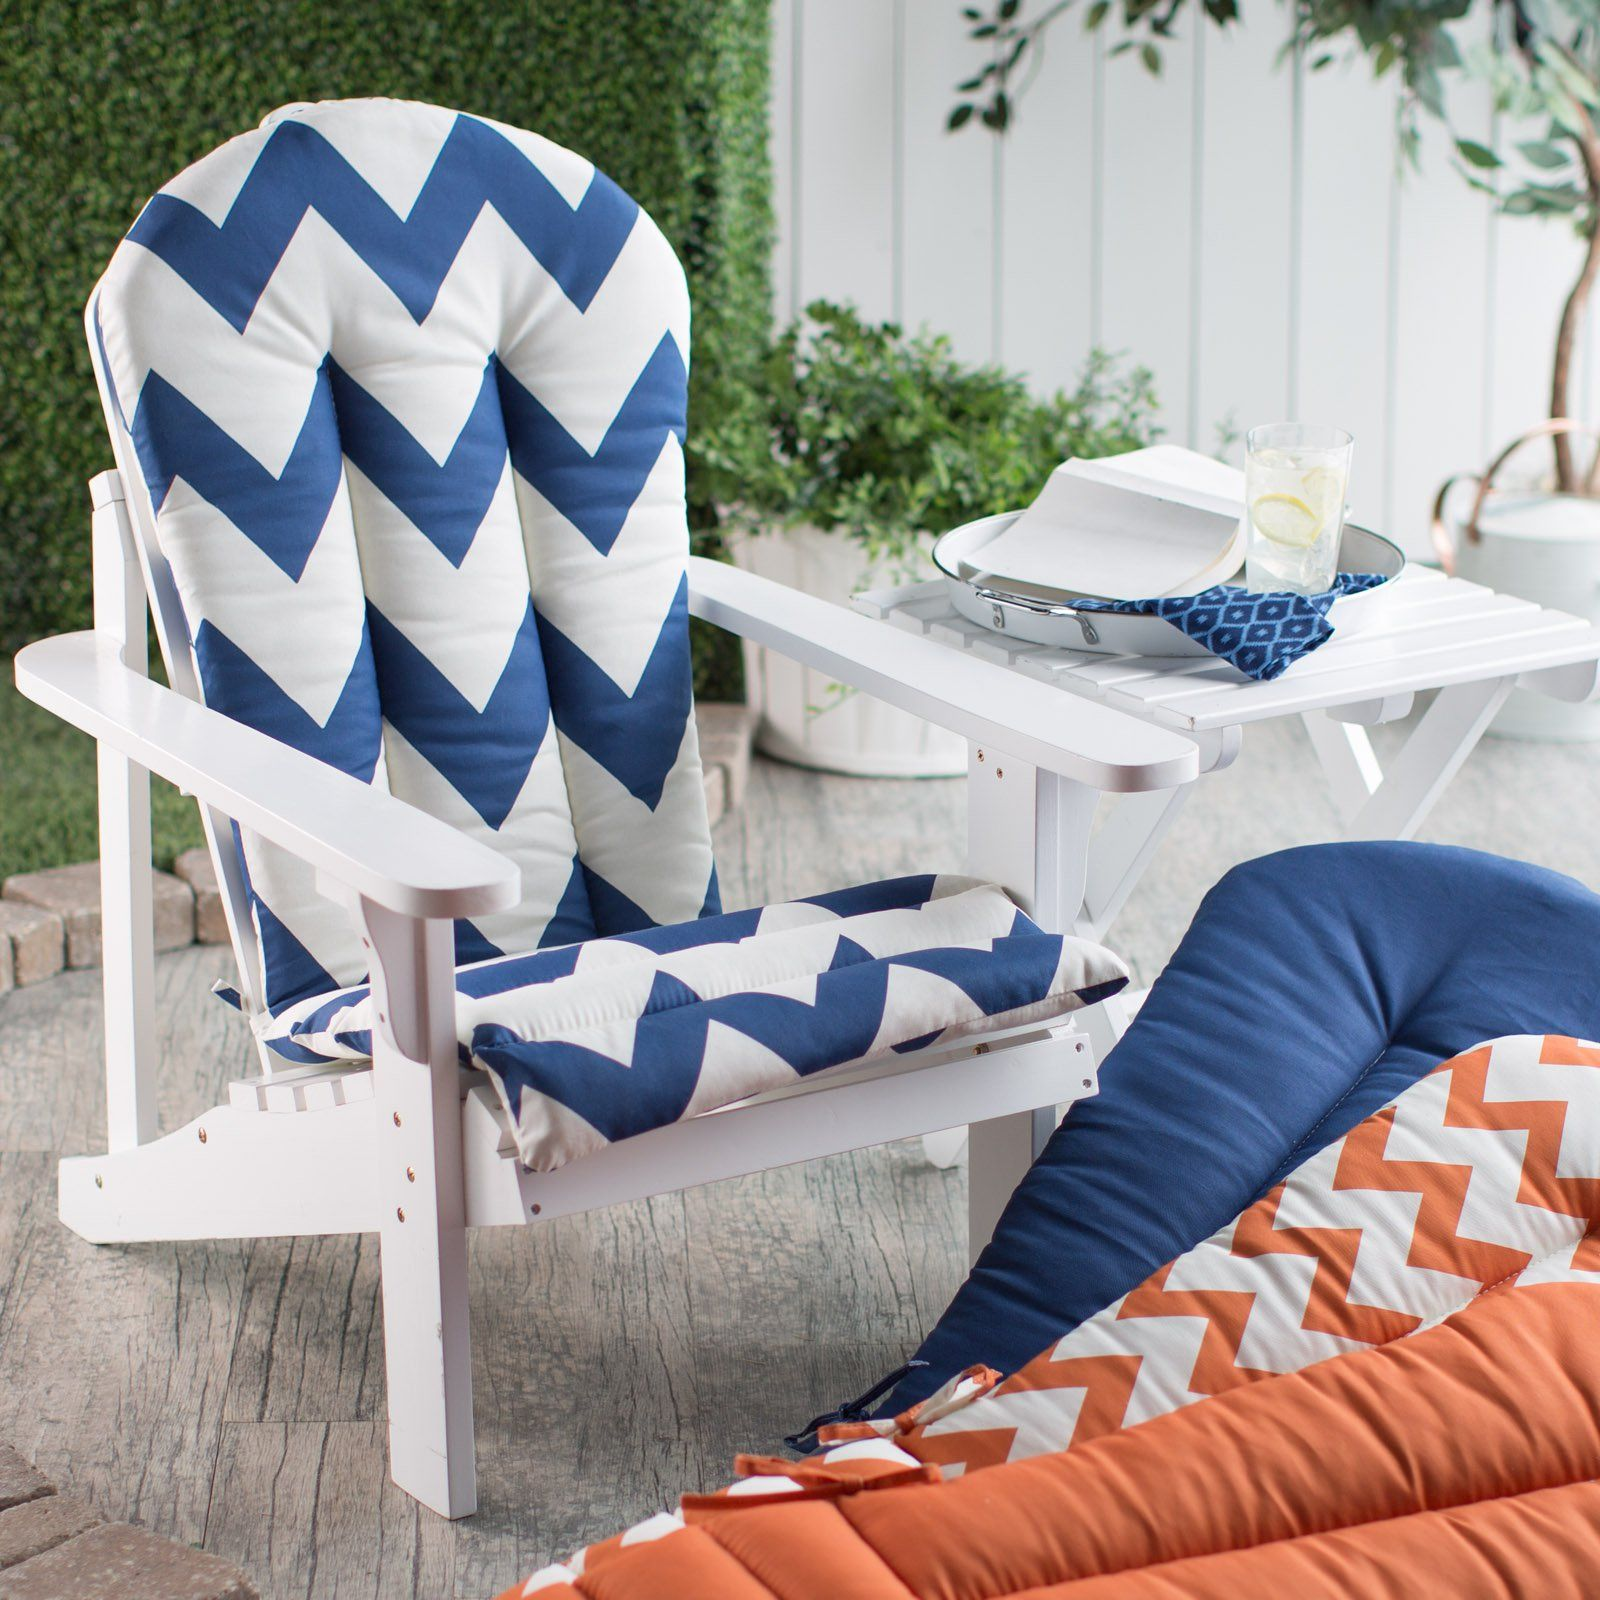 Attractive Coral Coast Valencia Adirondack Chair Cushion   $51.99 @hayneedle